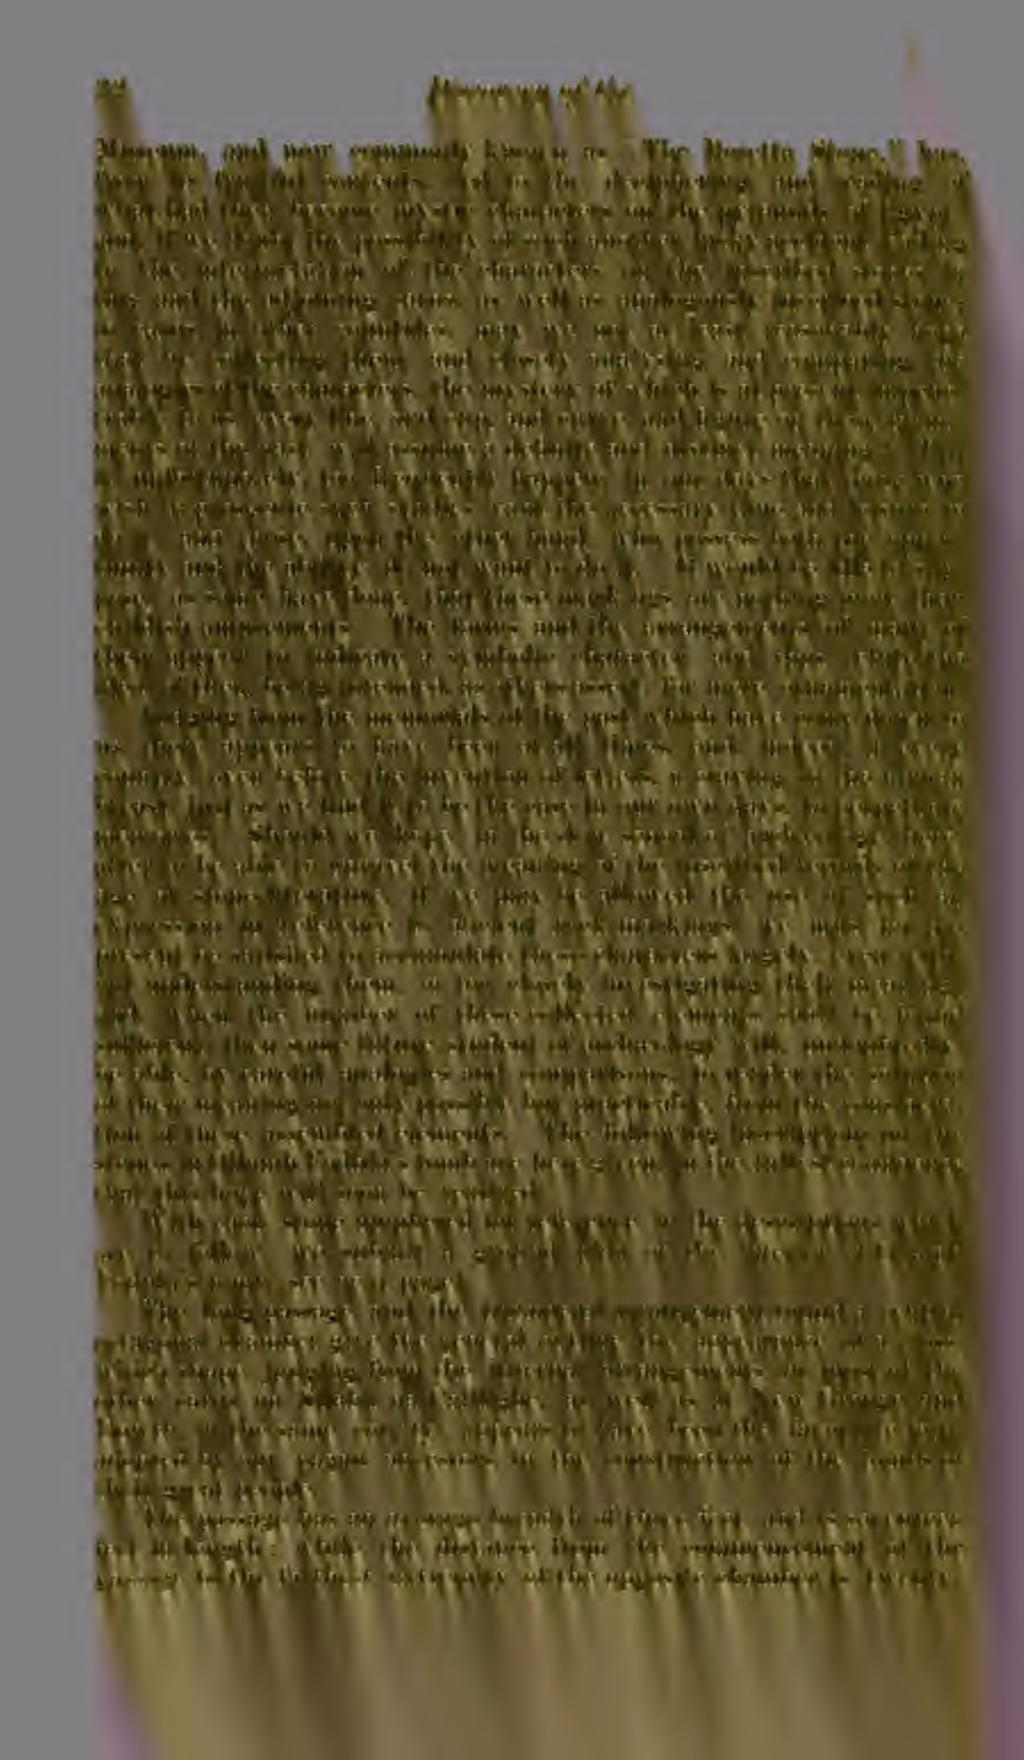 "32 Discovery of the Museum, and now commonly known as ""The Rosetta Stone,"" has, from its fruitful contents, led to the deciphering and reading of what had then become mystic characters on the"